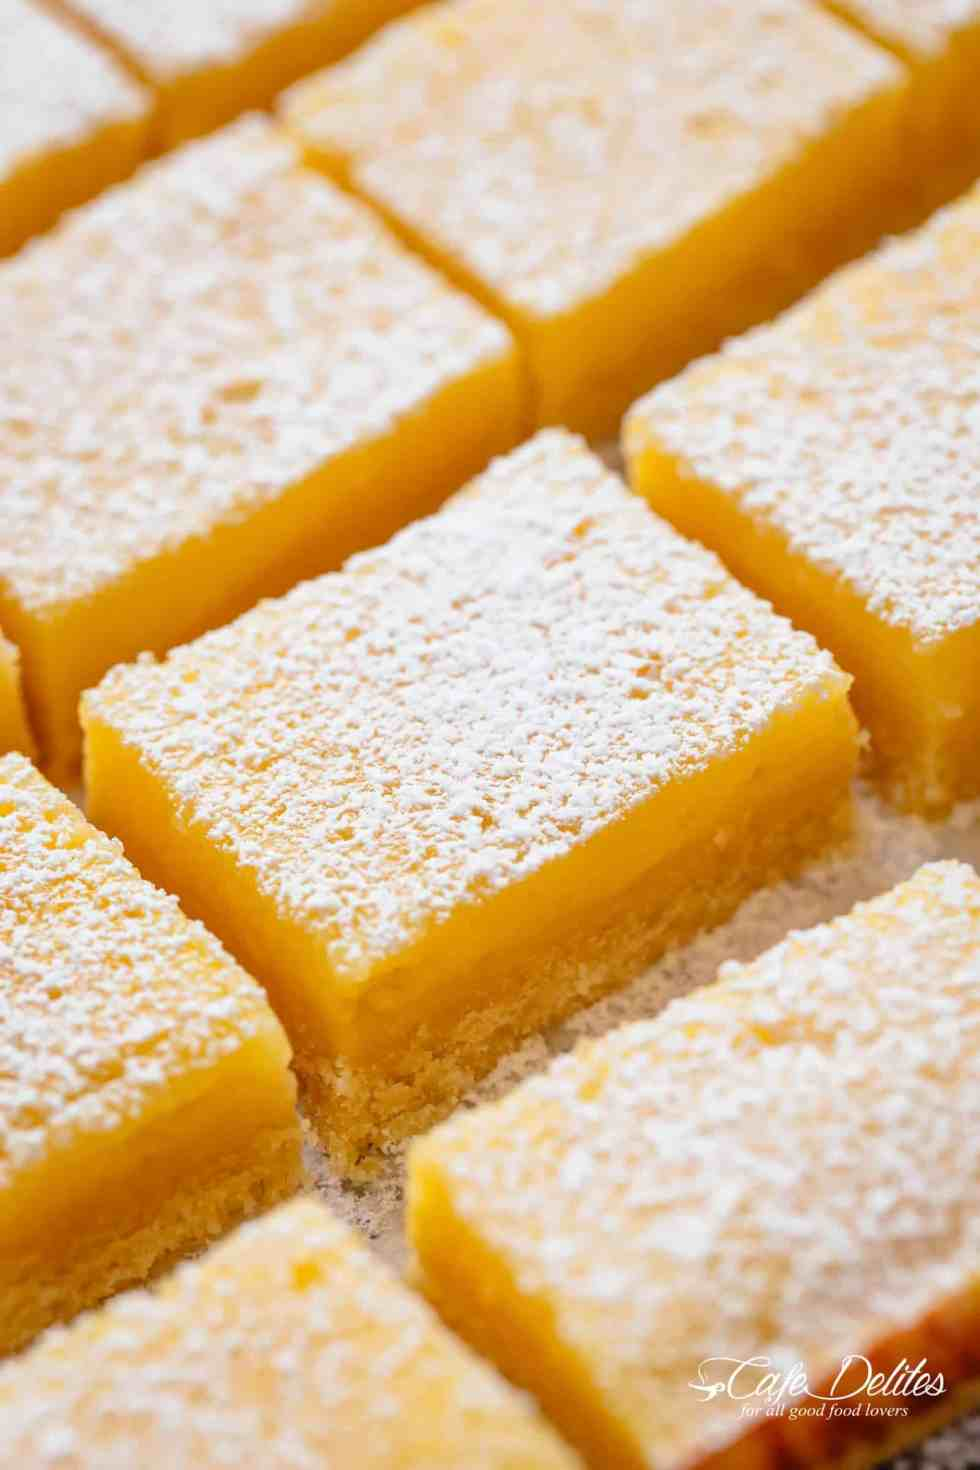 101 calorie Lightened Up Lemon Bars are the perfect dessert and taste so sinful without the guilt! You won't believe they're lightened up! | https://cafedelites.com